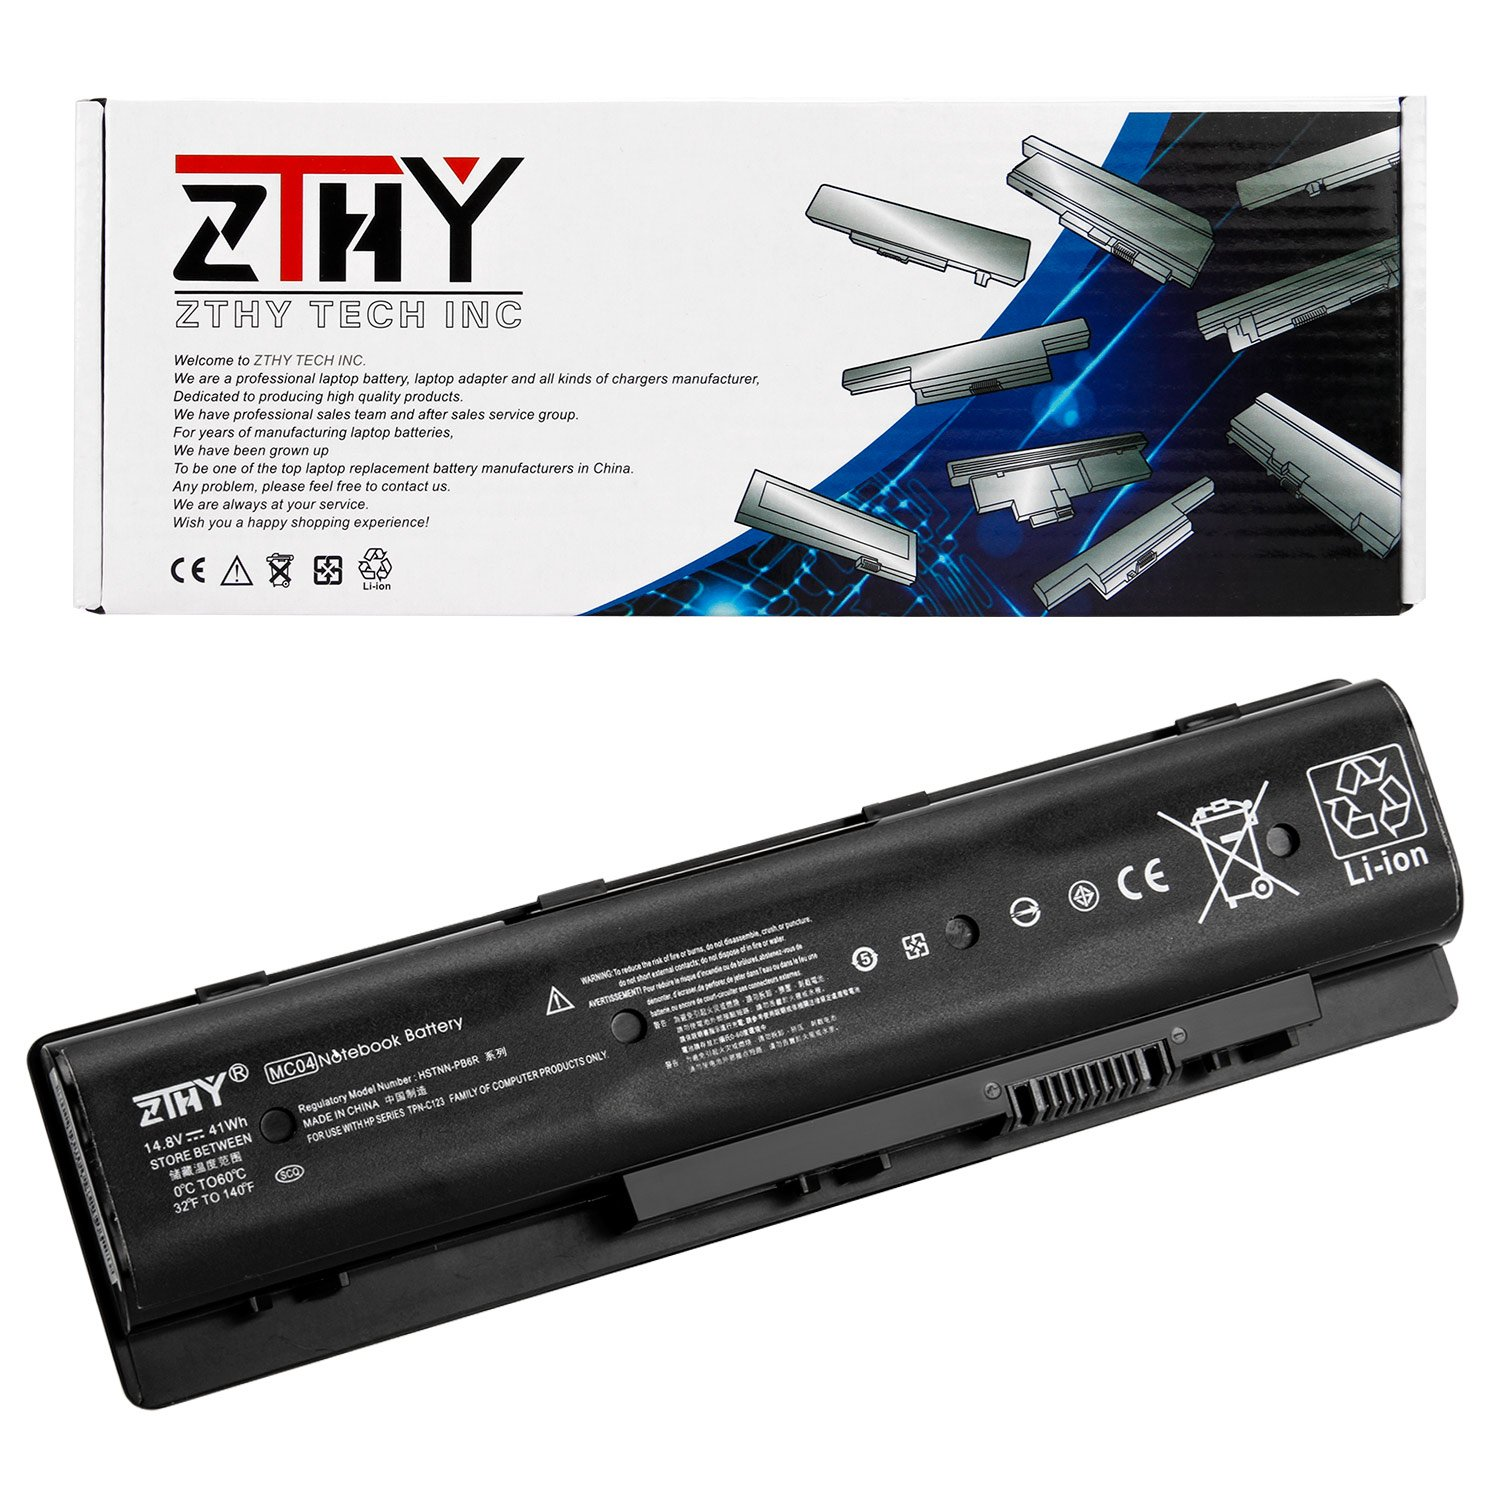 ZTHY Compatible 41WH MC04 Laptop Battery Replacement for HP Envy m7-n109dx m7-n011dx 17-r Series Notebook HSTNN-PB6R 805095-001 14.8V 2550mAh